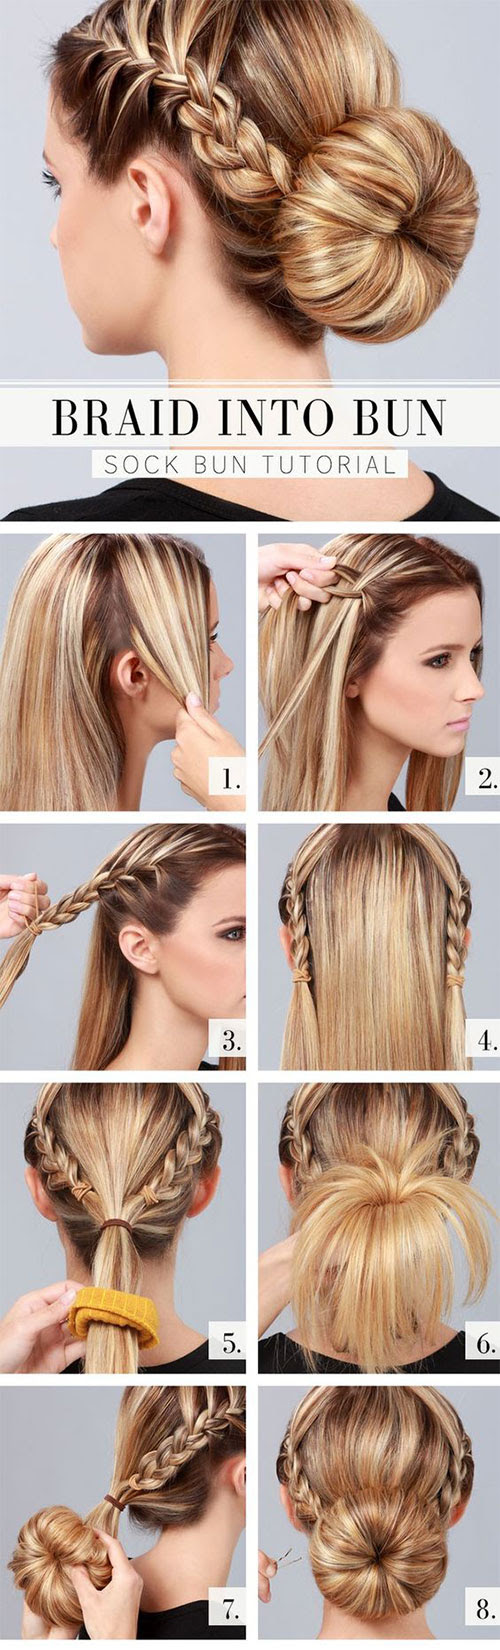 Top Inspiration 10+ Easy Hairstyle Tutorial Step By Step